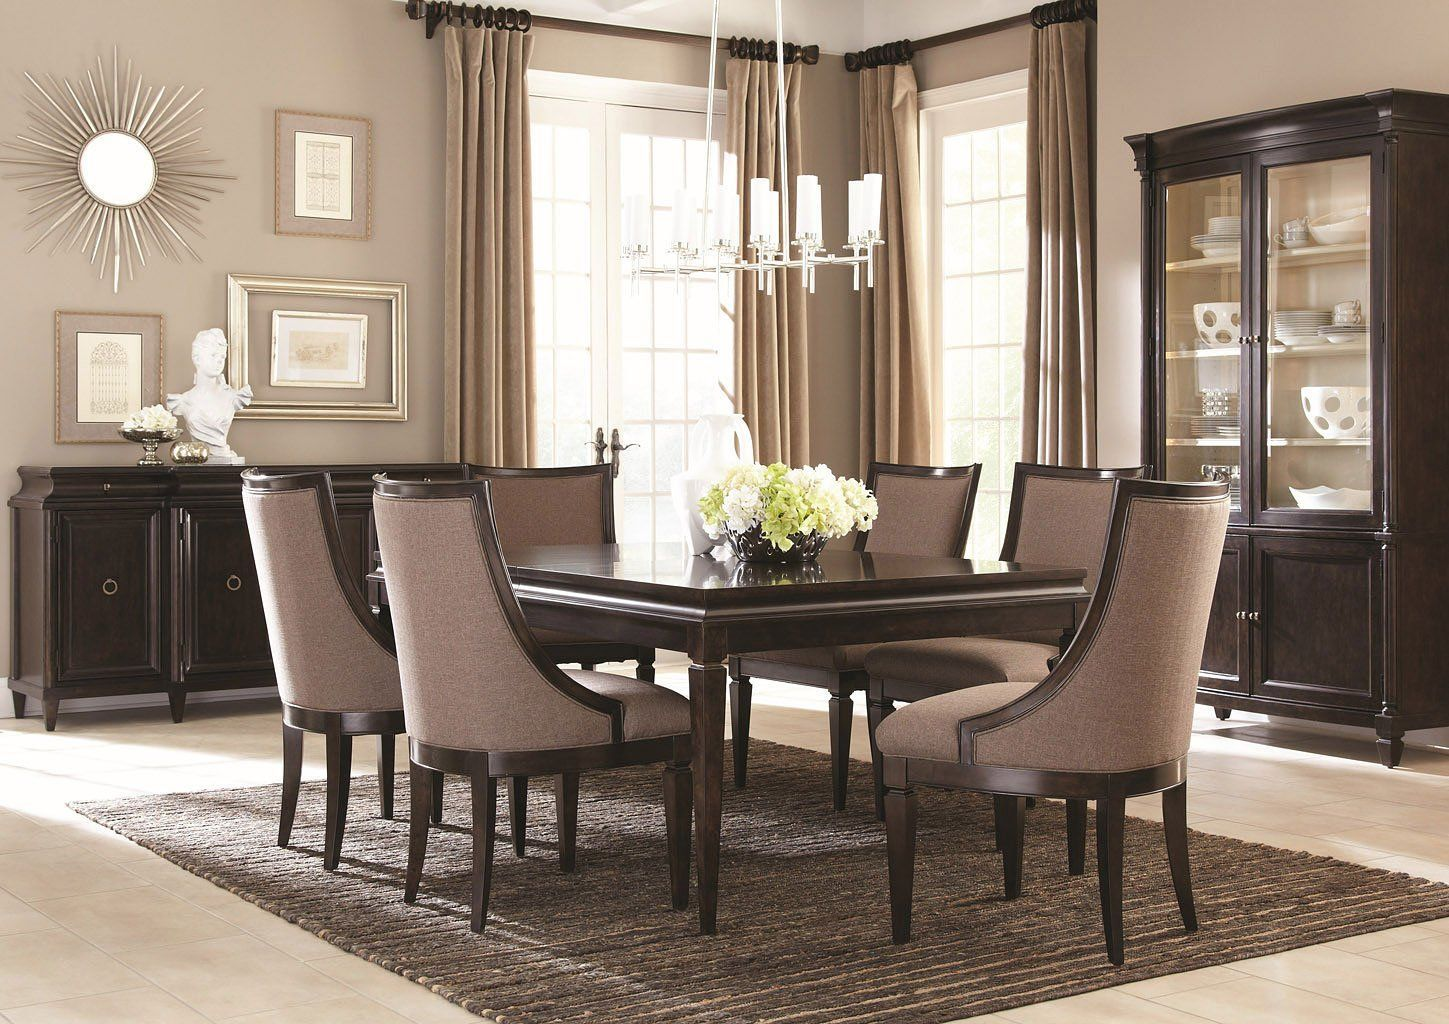 Classics Dining Room Set ART Furniture In Formal Sets Leonardo Da Vinci Once Said Simplicity Is The Ultimate Sophistication